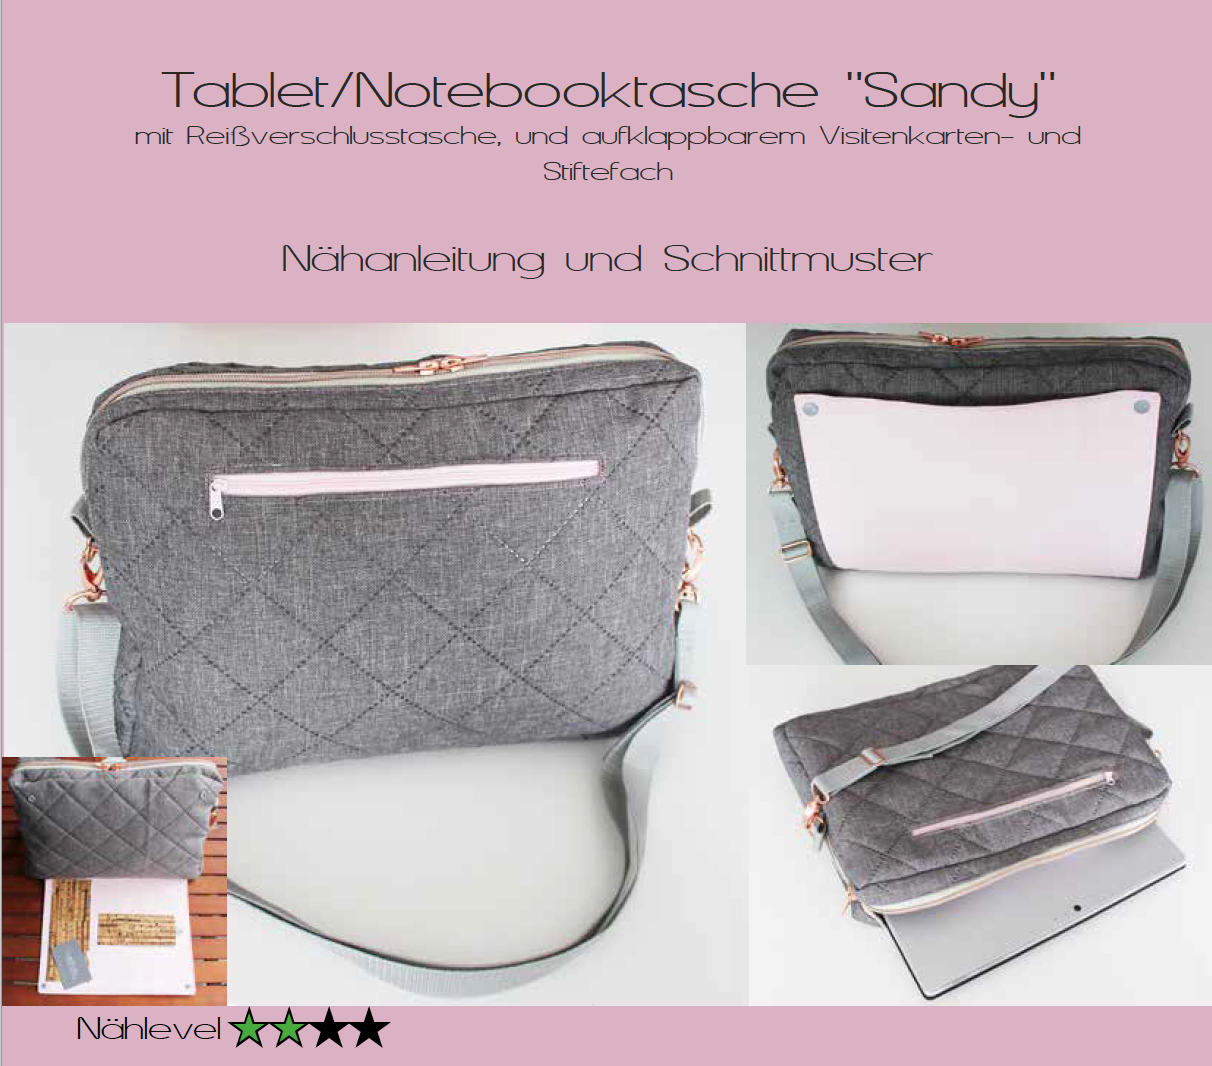 Titel Tablet-/Notebooktasche Sandy